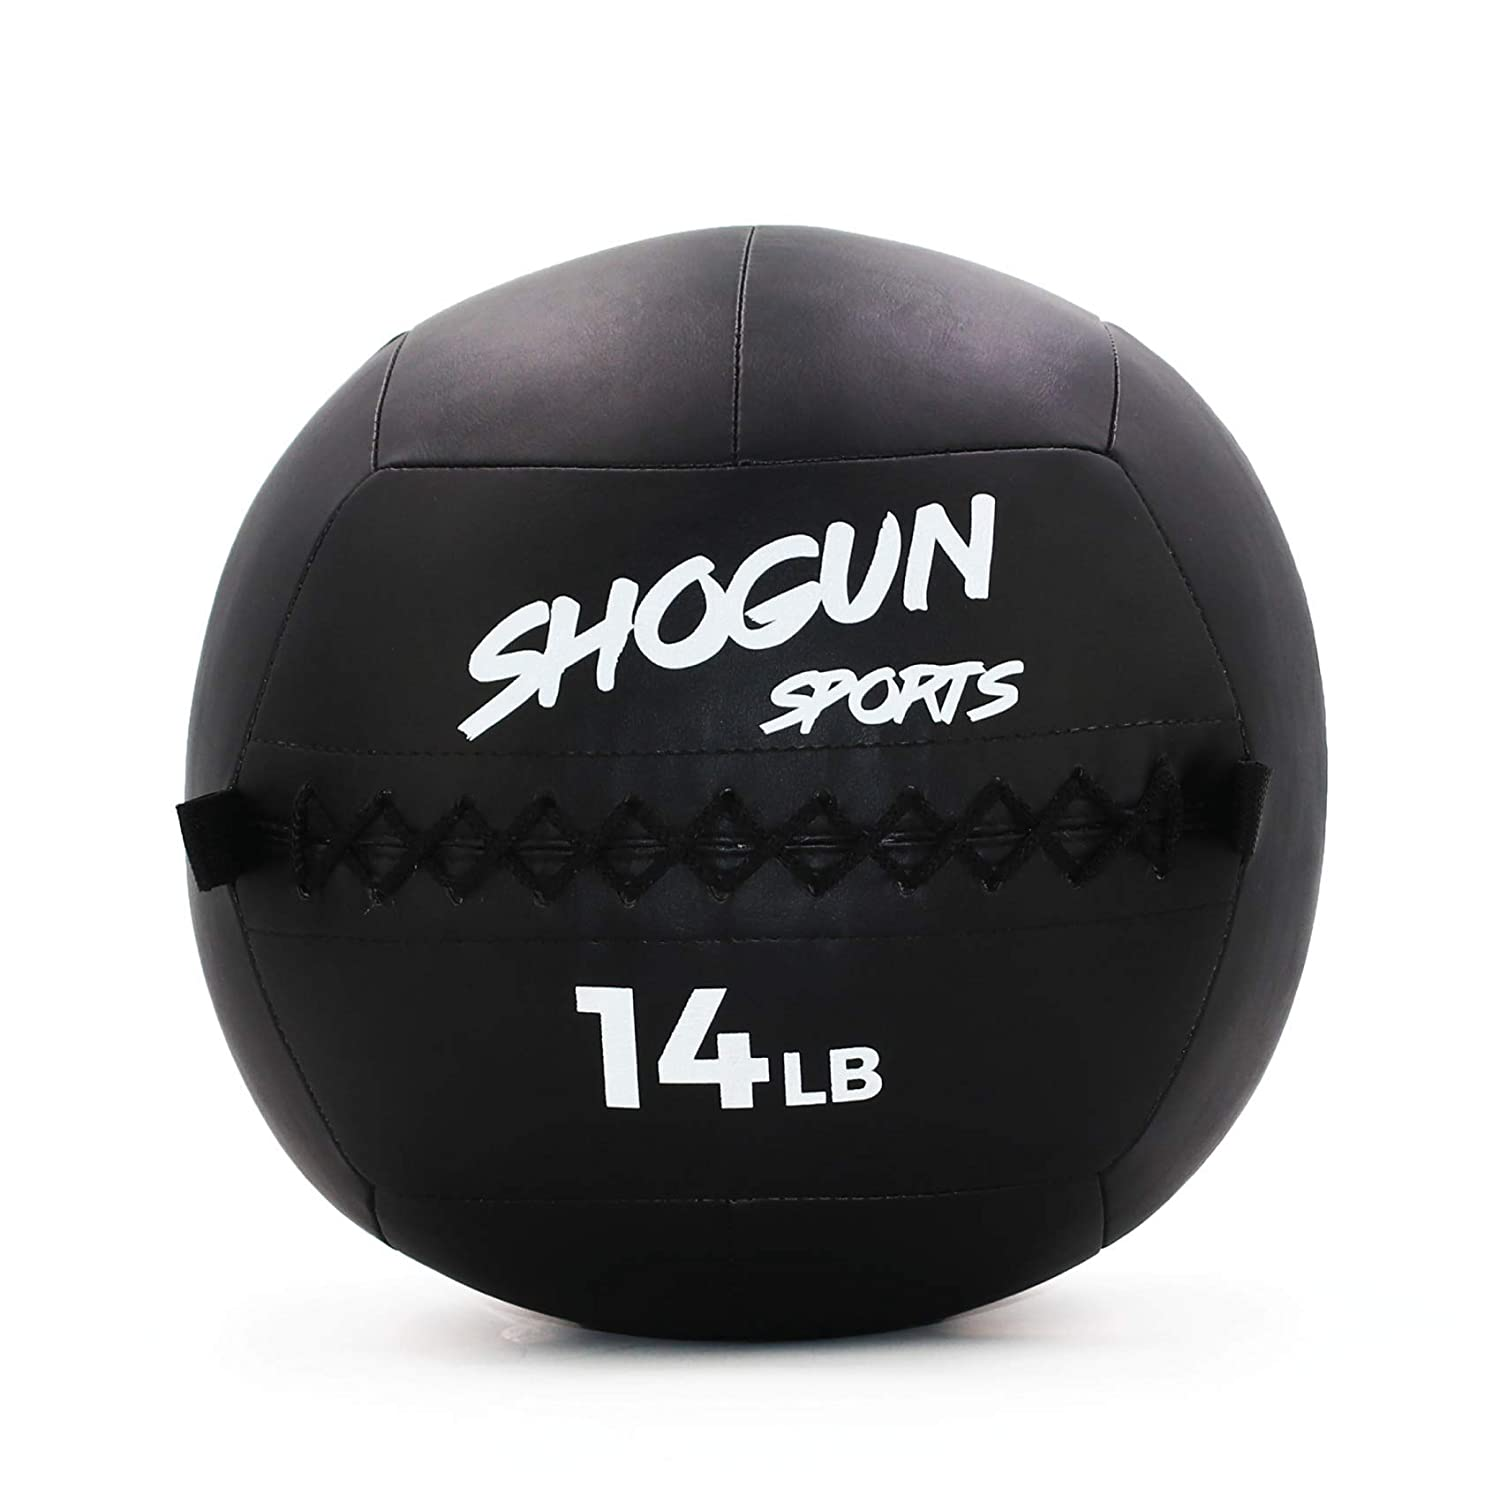 Shogun Sports Soft Wall Ball. Durable Medicine Ball for Strength, Conditioning, Cardio and Cross Training. Ideal for Wall Balls, Lunges, Partner Toss, Twists. Available in (10, 14, 20 LB)